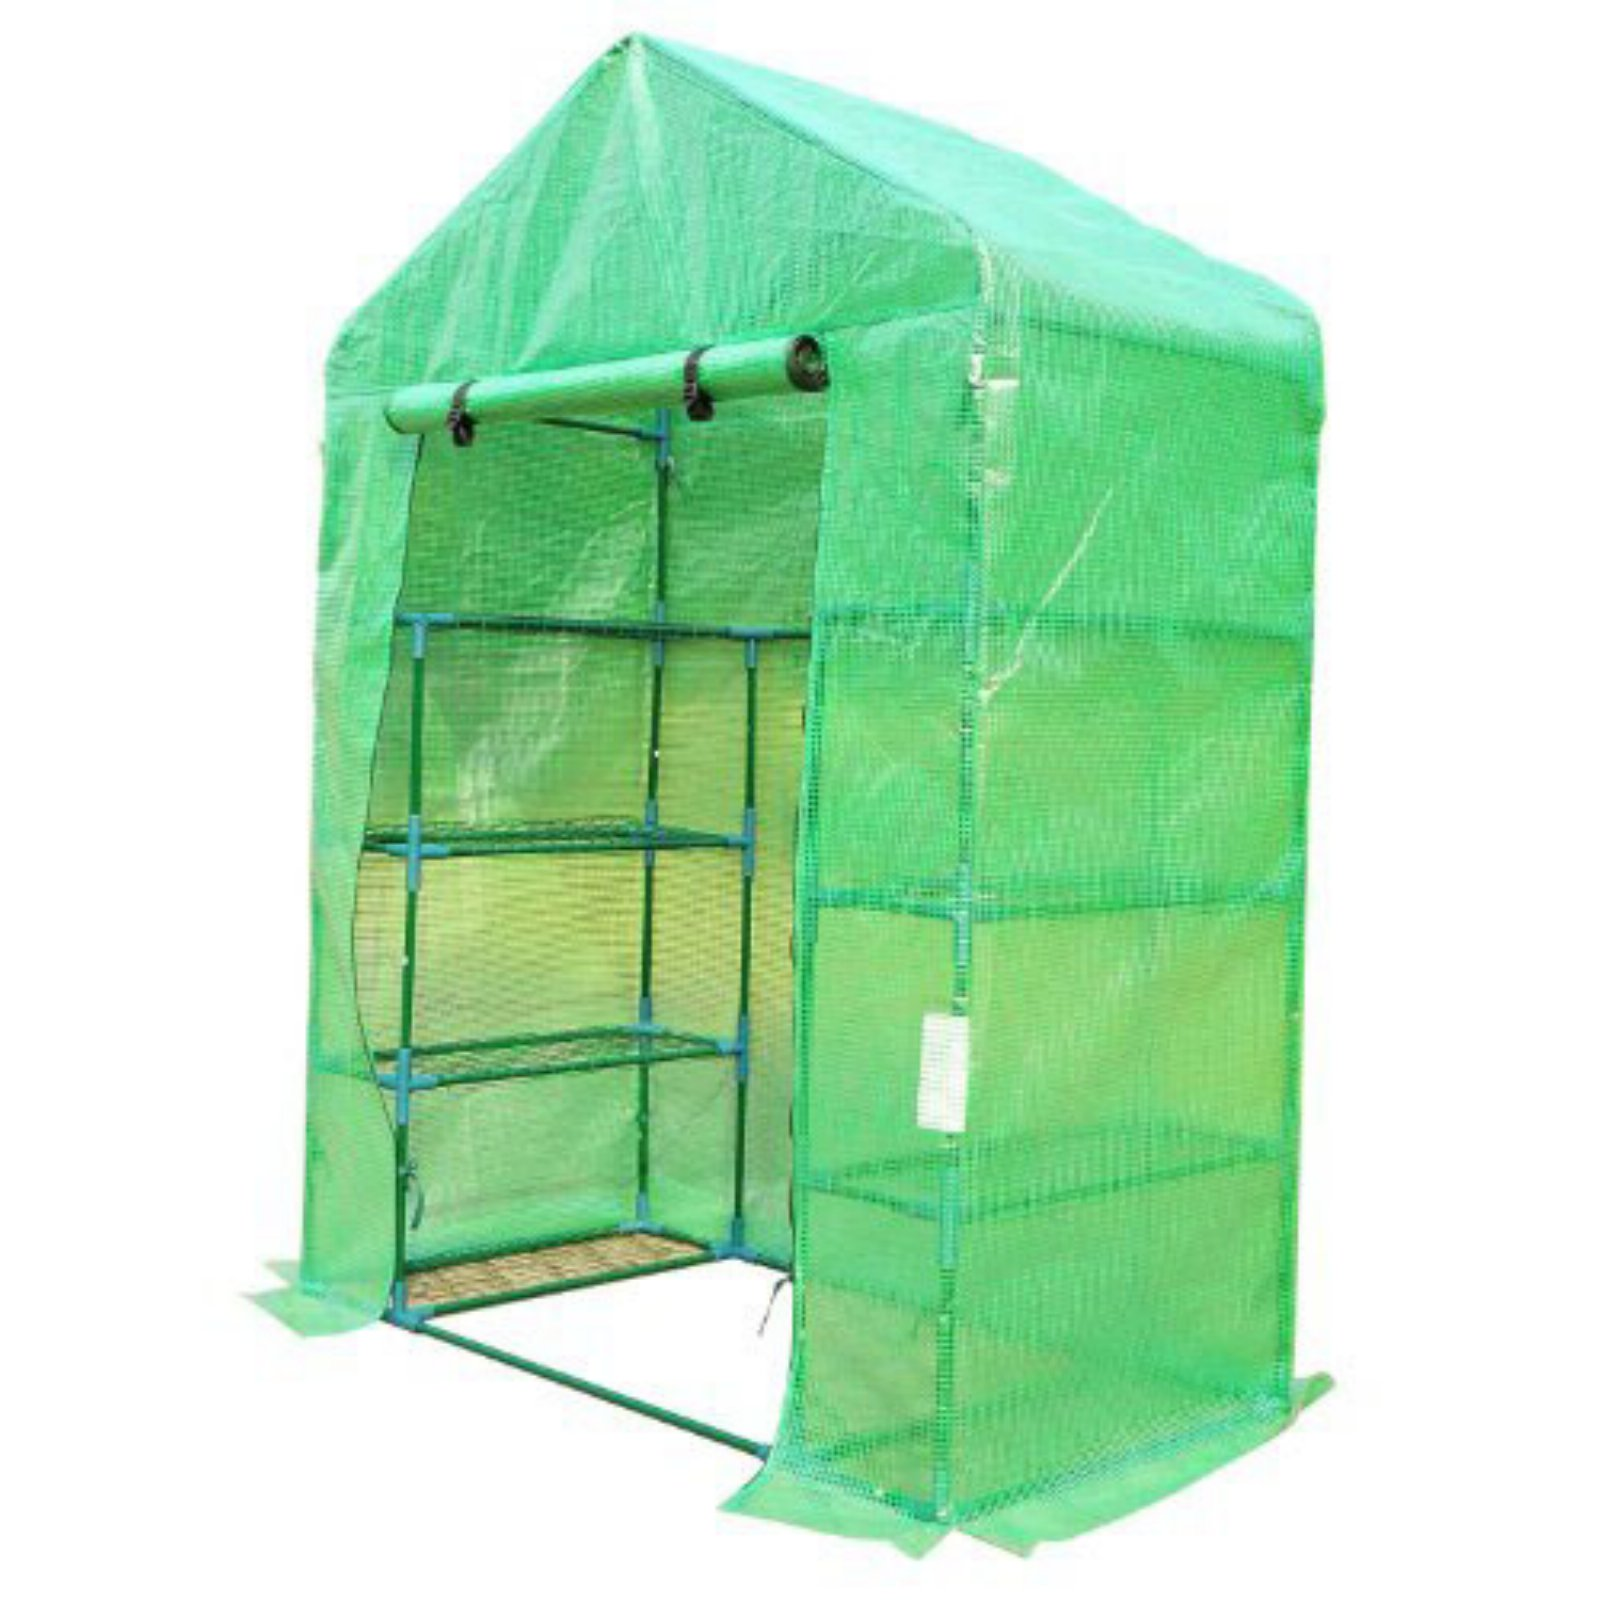 Outsunny 56L x 30W x 78H in. Portable Greenhouse with Shelves